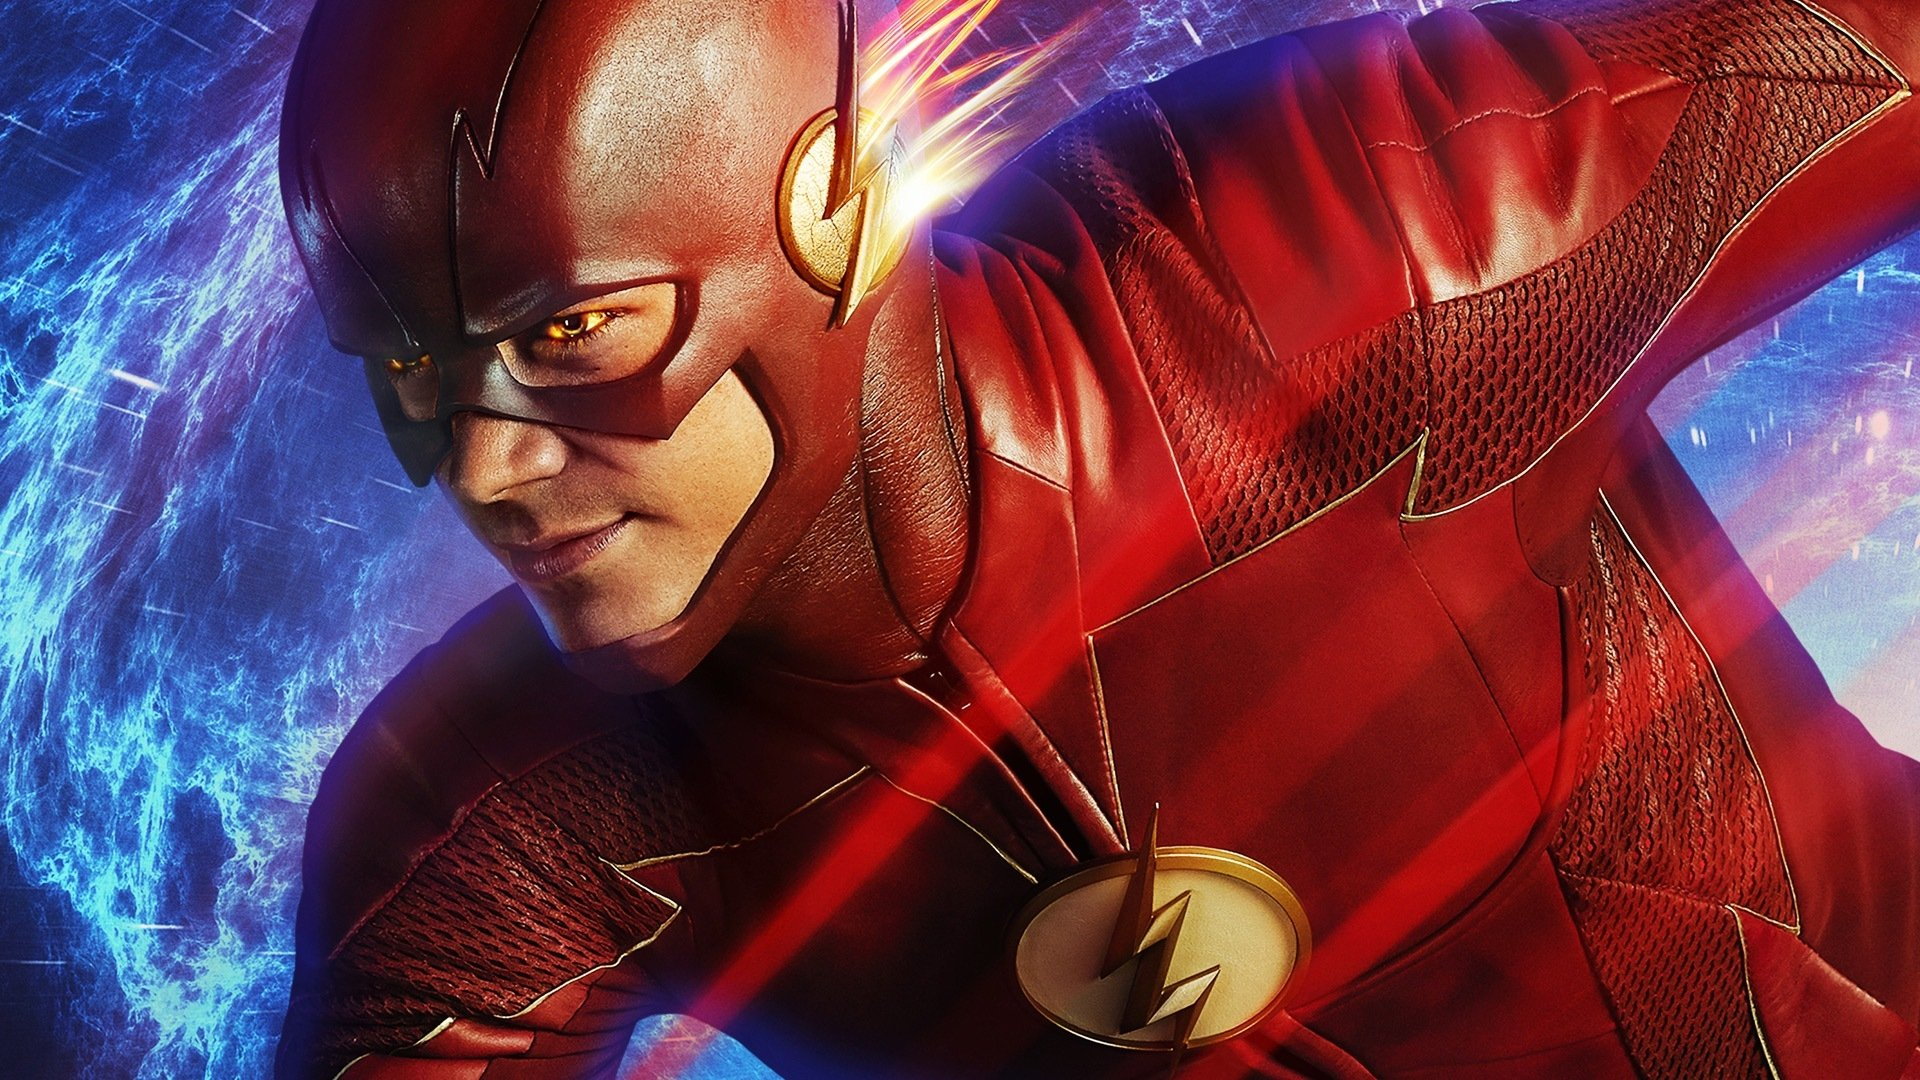 The Flash Wallpaper 1920x1080 Posted By Christopher Anderson